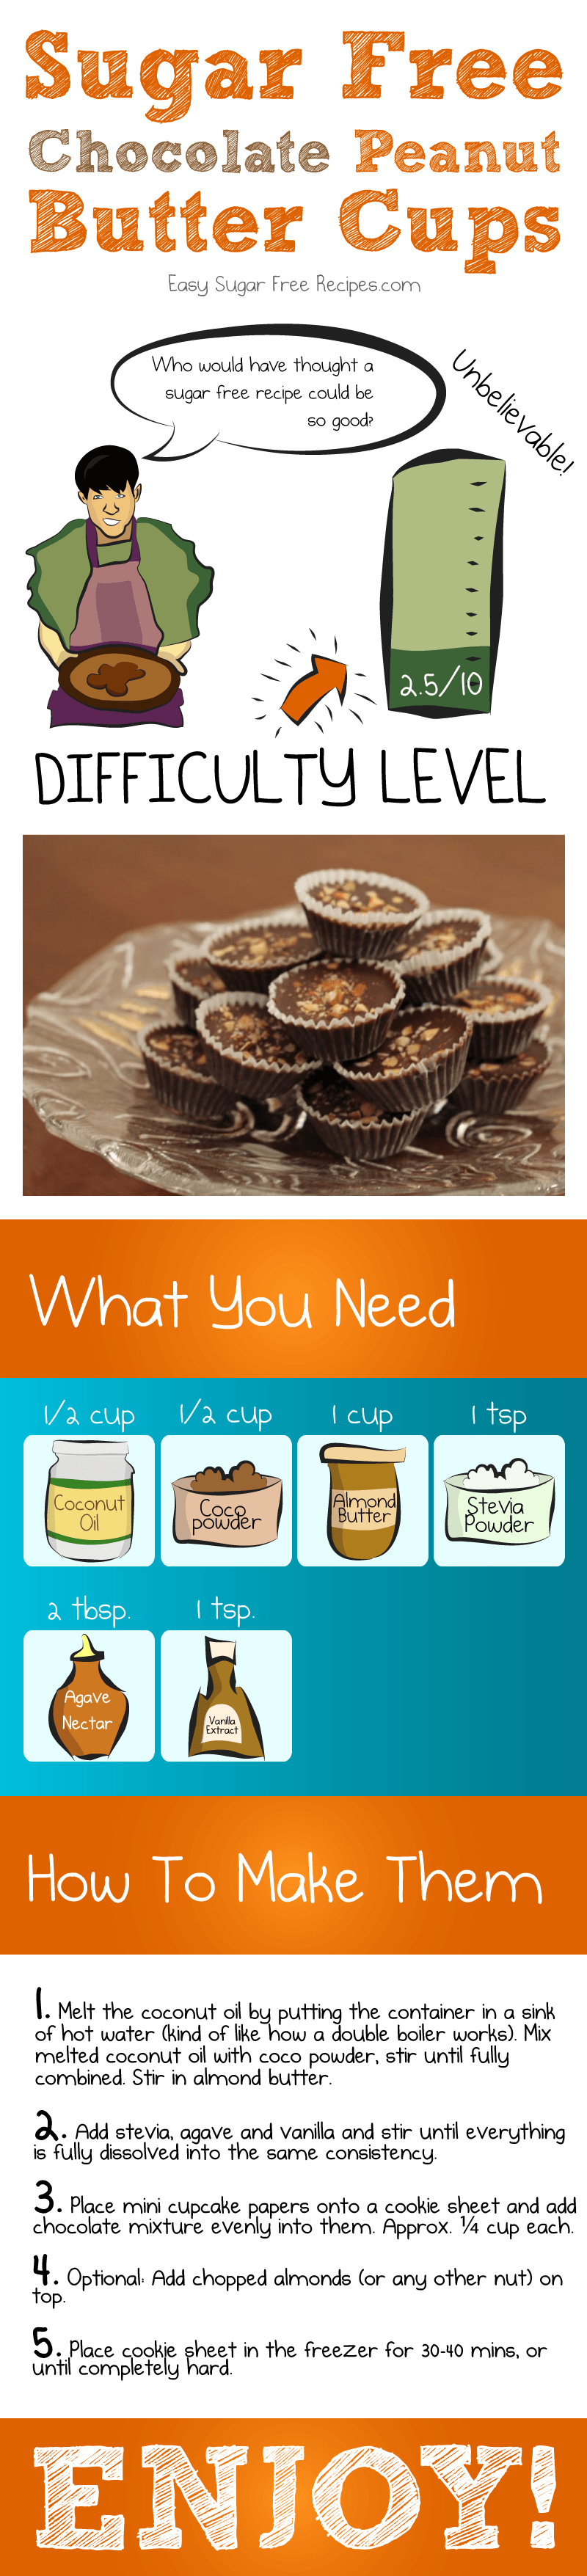 a recipe cup for sugar free chocolate peanut butter cups with ingredients and directions